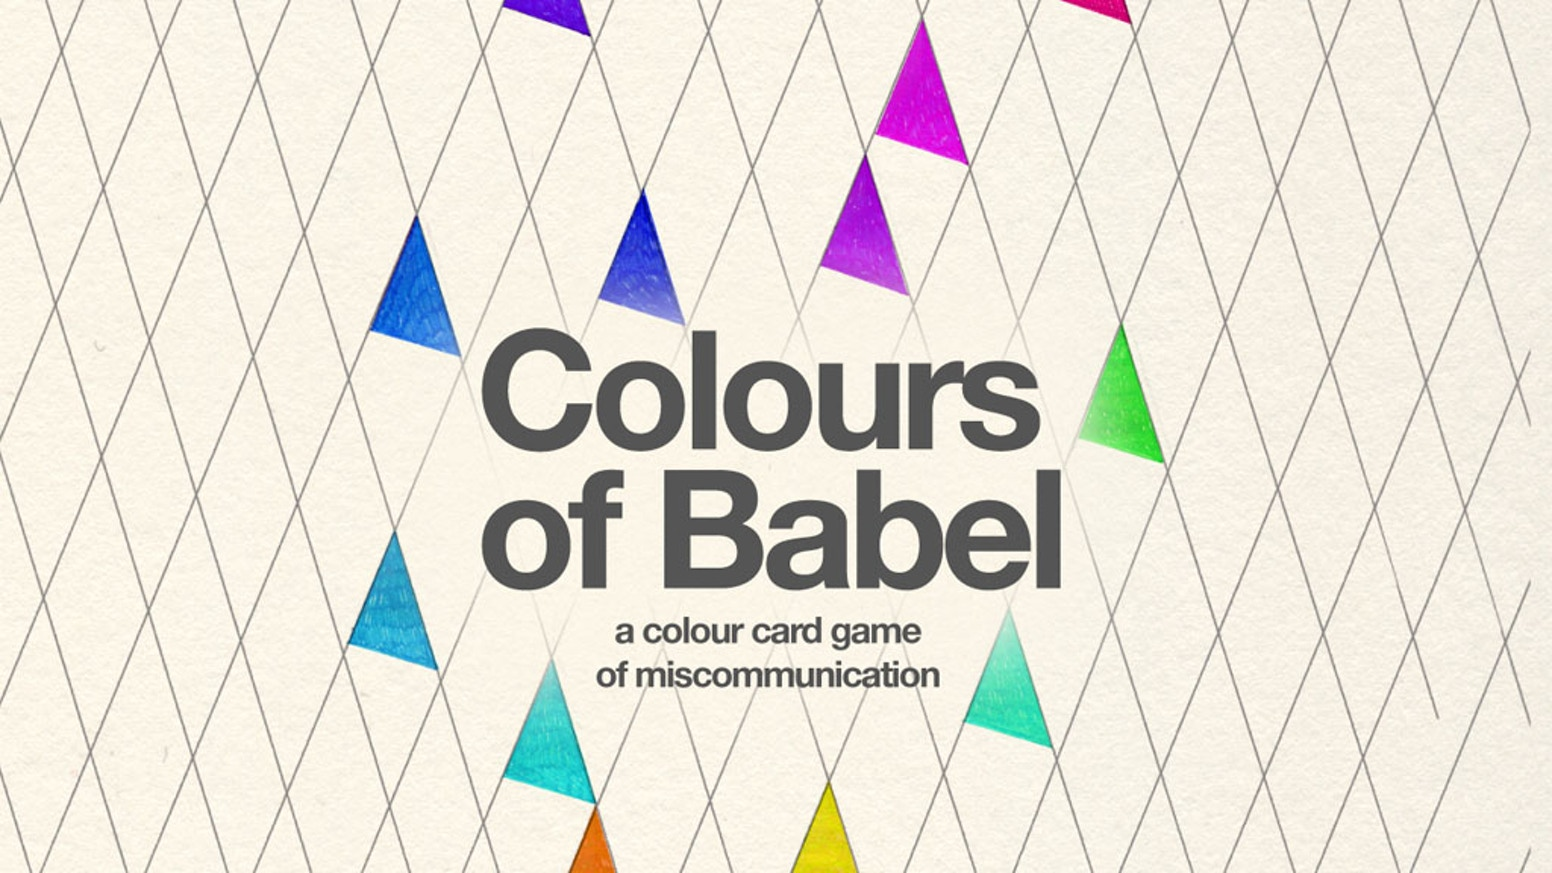 Colours of Babel - a colour card game of miscommunication